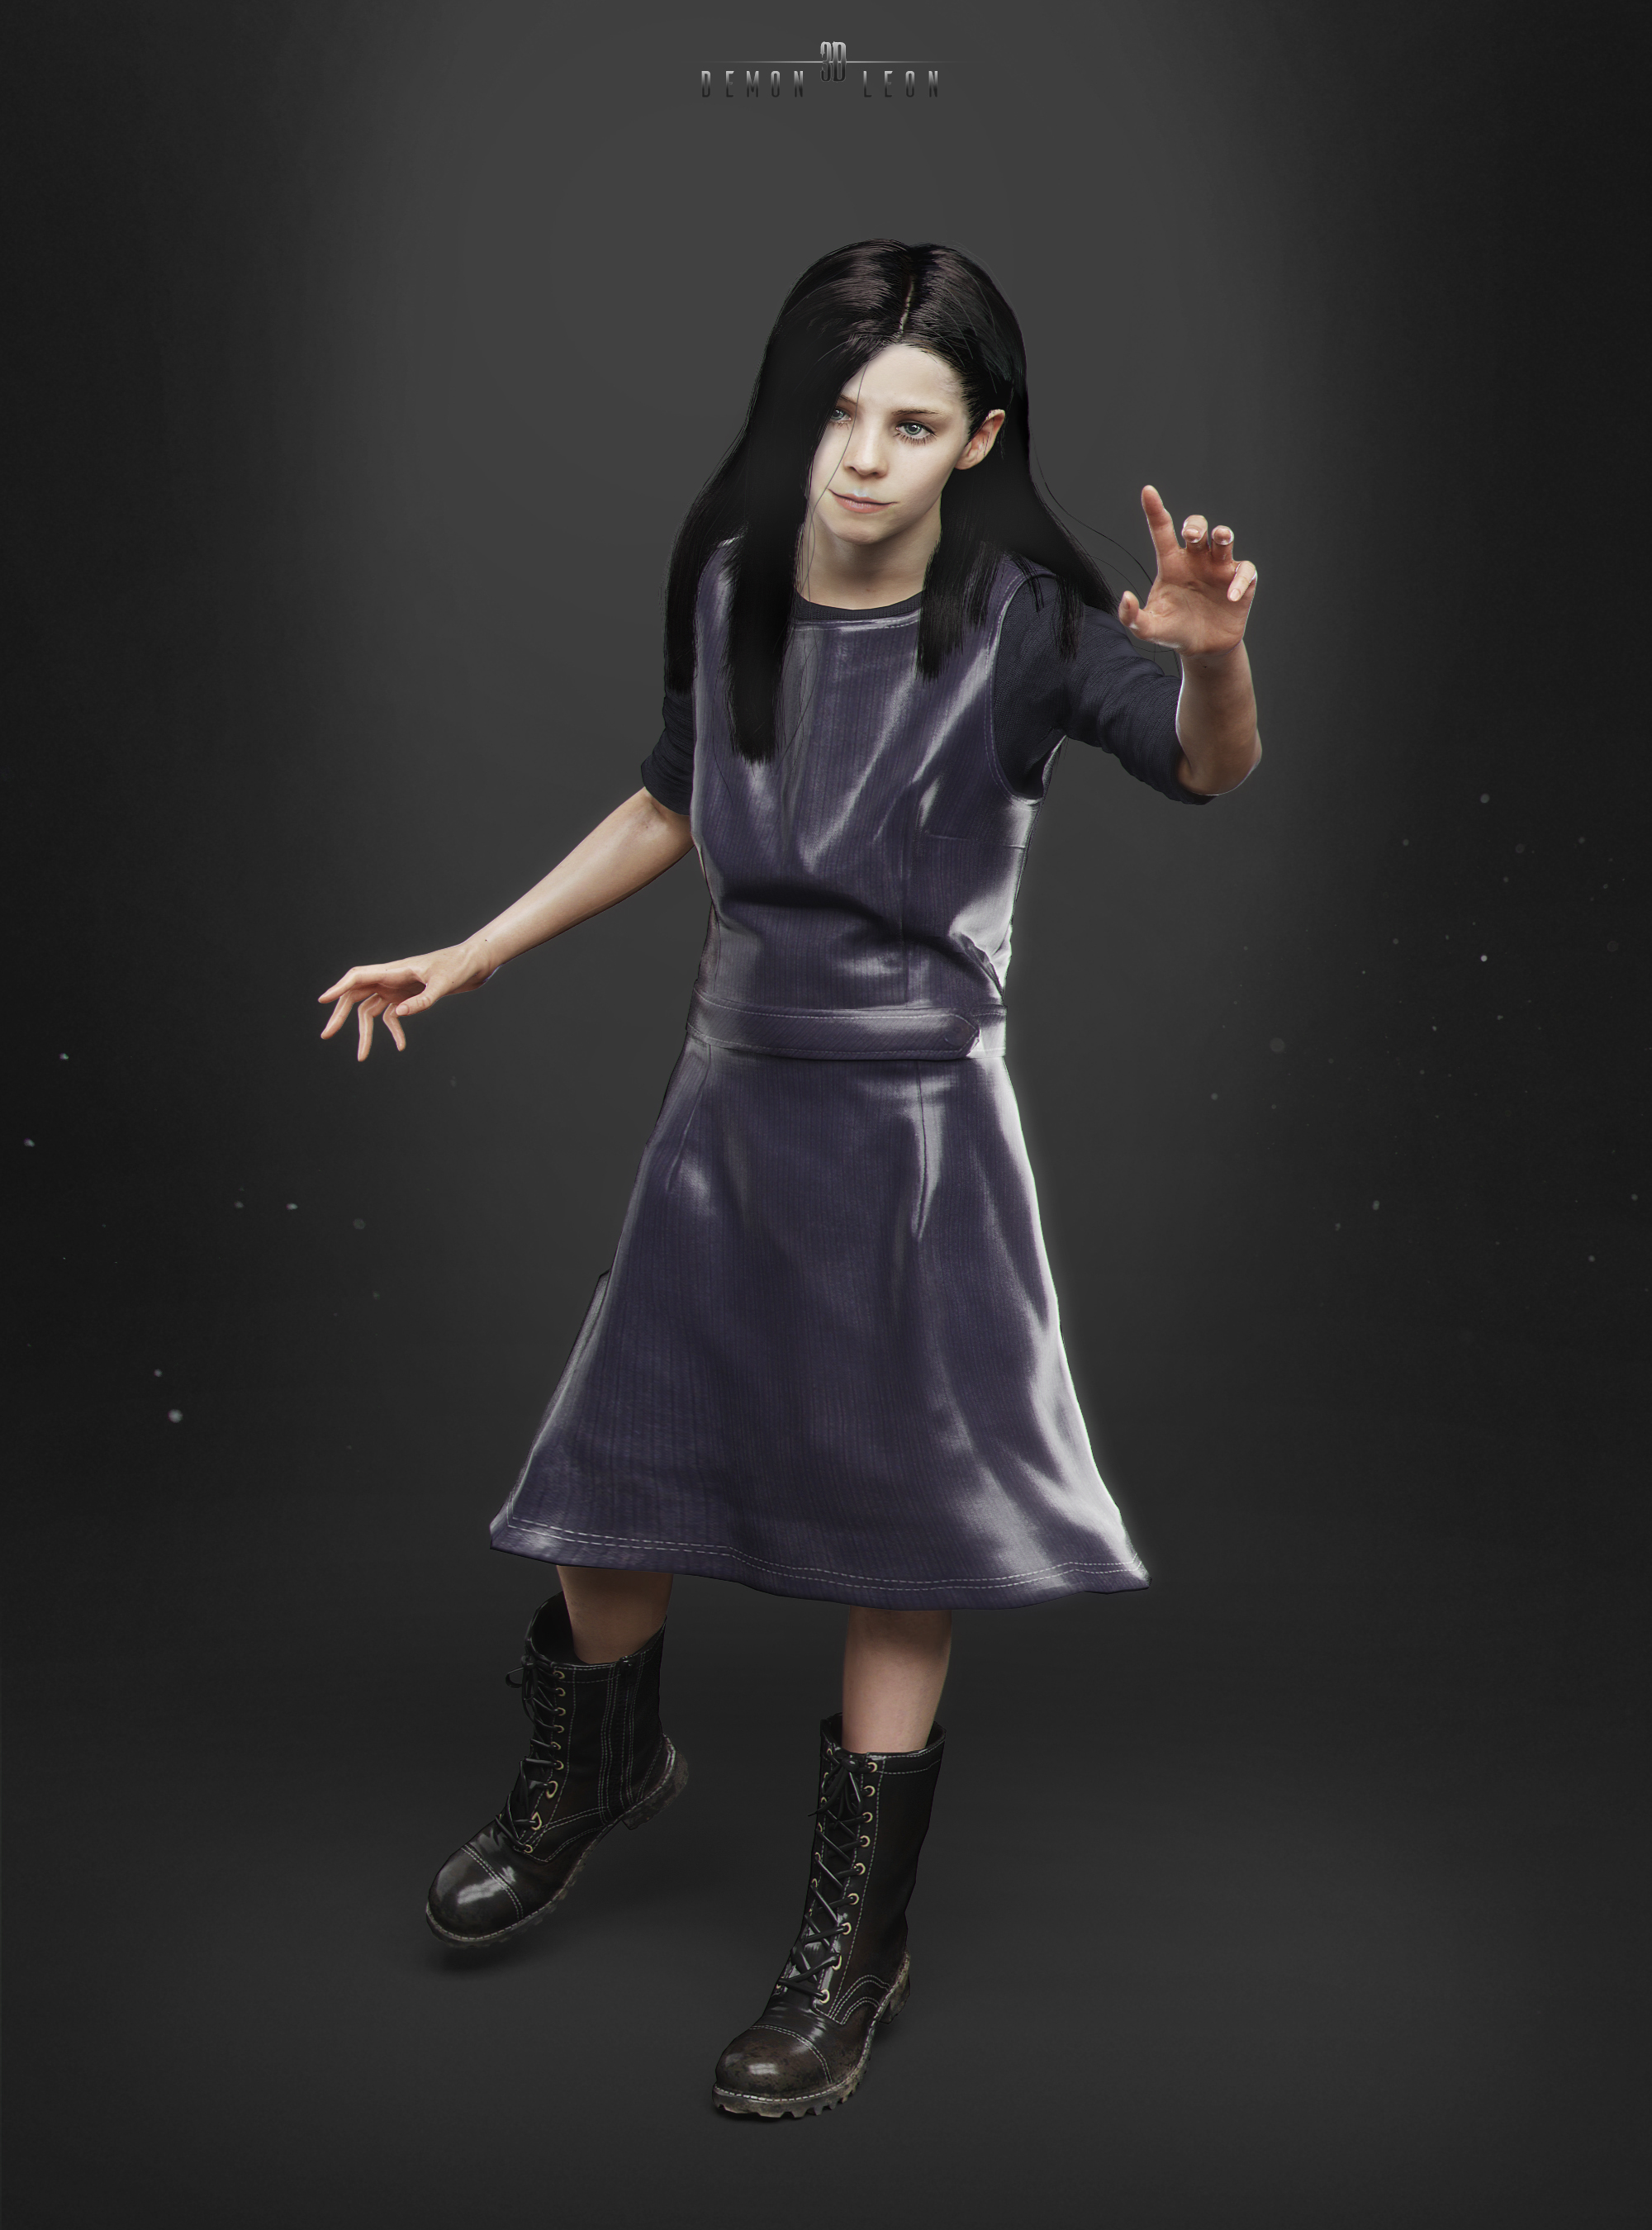 Resident Evil 7 Eveline By Demonleon3d On Deviantart